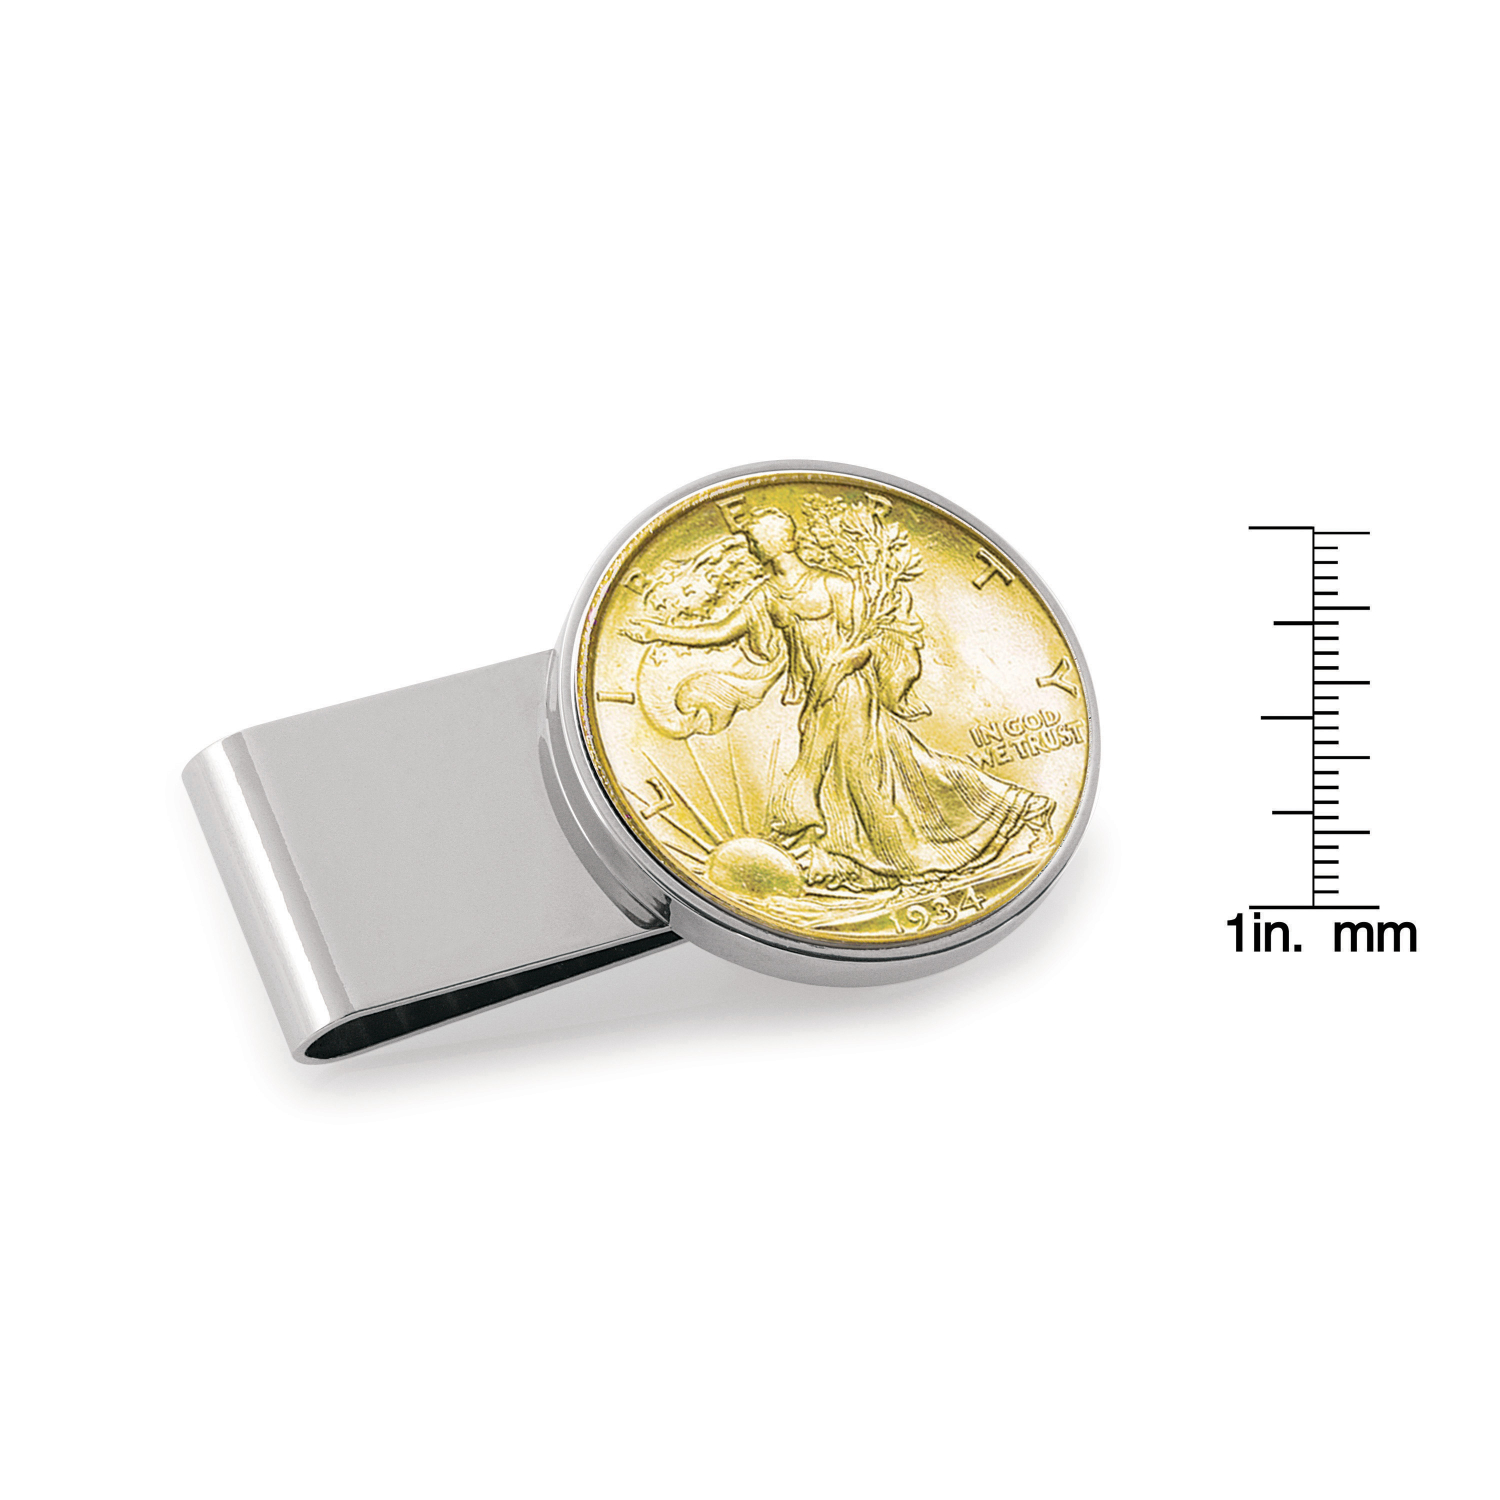 Gold-Layered Silver Walking Liberty Half Dollar Stainless Steel Silvertone Coin Money Clip